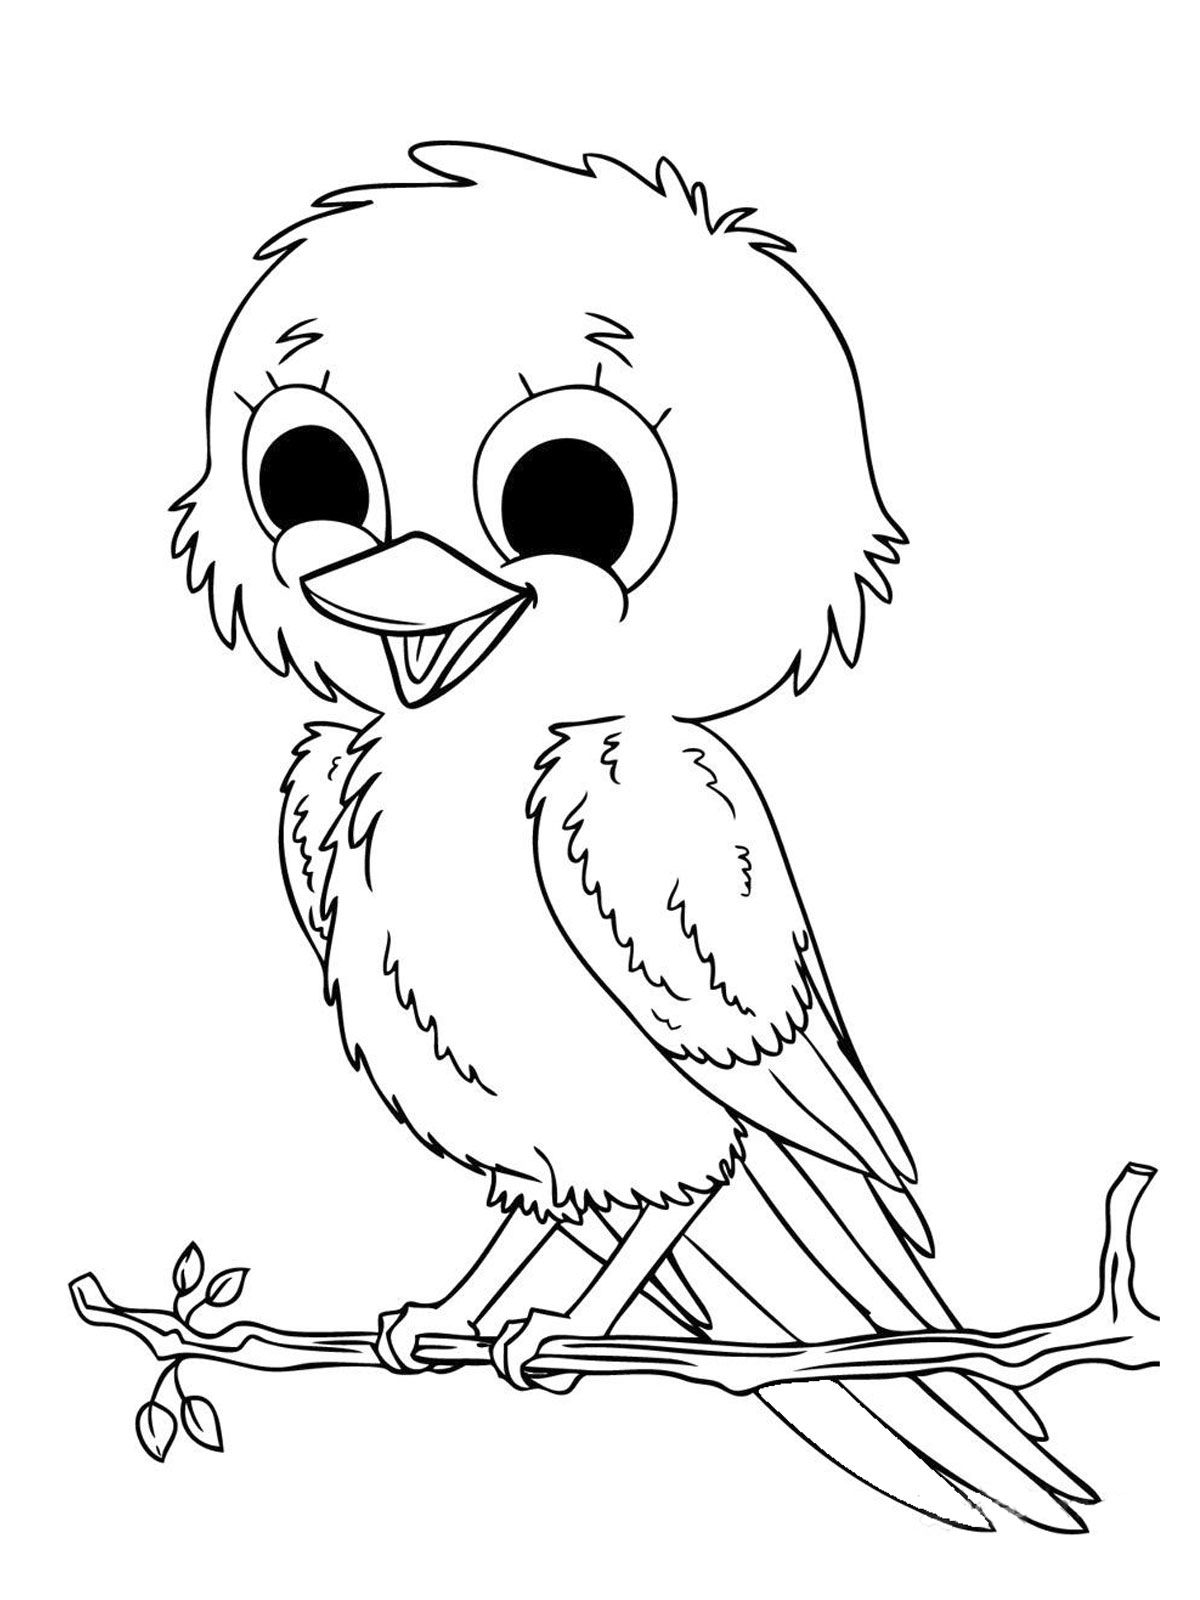 Childrens animal colouring pages - Free Coloring Pages Download All Baby Animals Coloring Pages Below Including Fawn Young